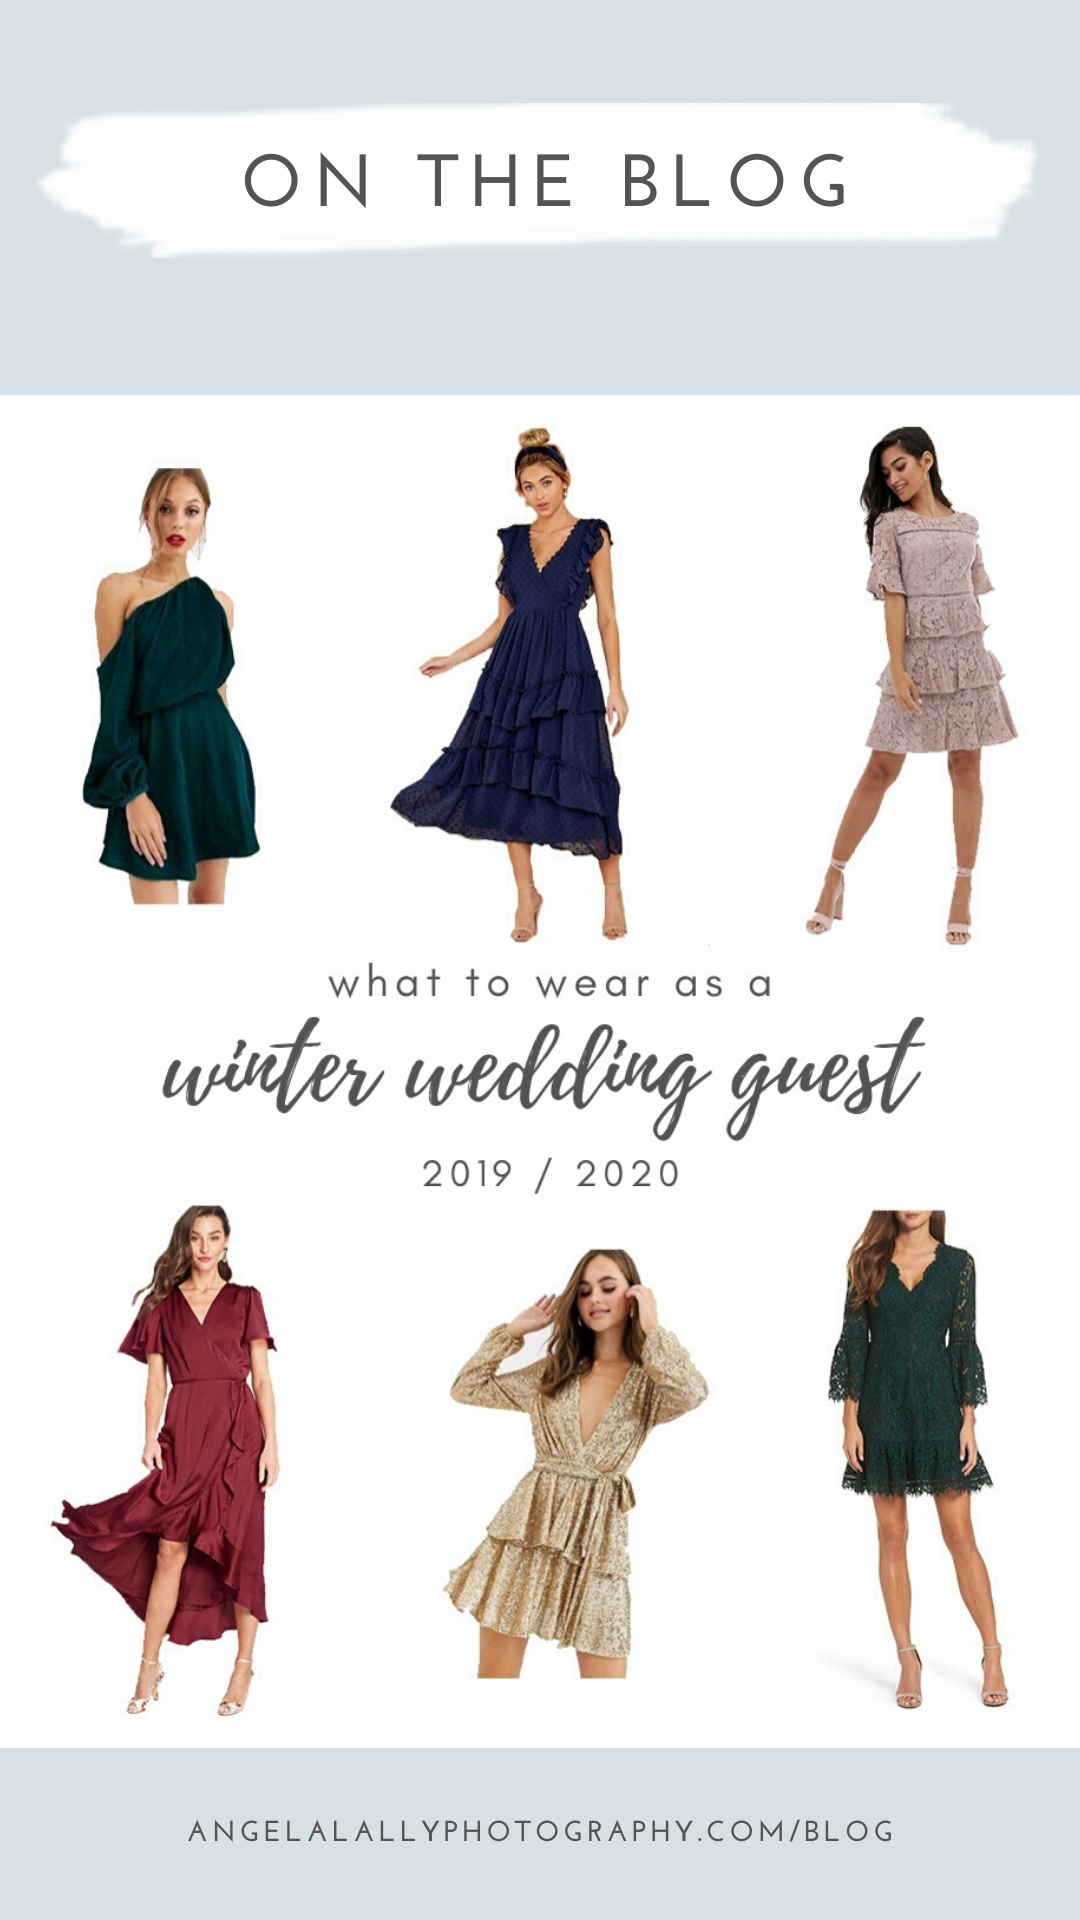 What To Wear As A Winter Wedding Guest 2019 2020 Wedding Guest Outfit Winter Winter Engagement Party Outfit Engagement Party Outfit Guest [ 1920 x 1080 Pixel ]